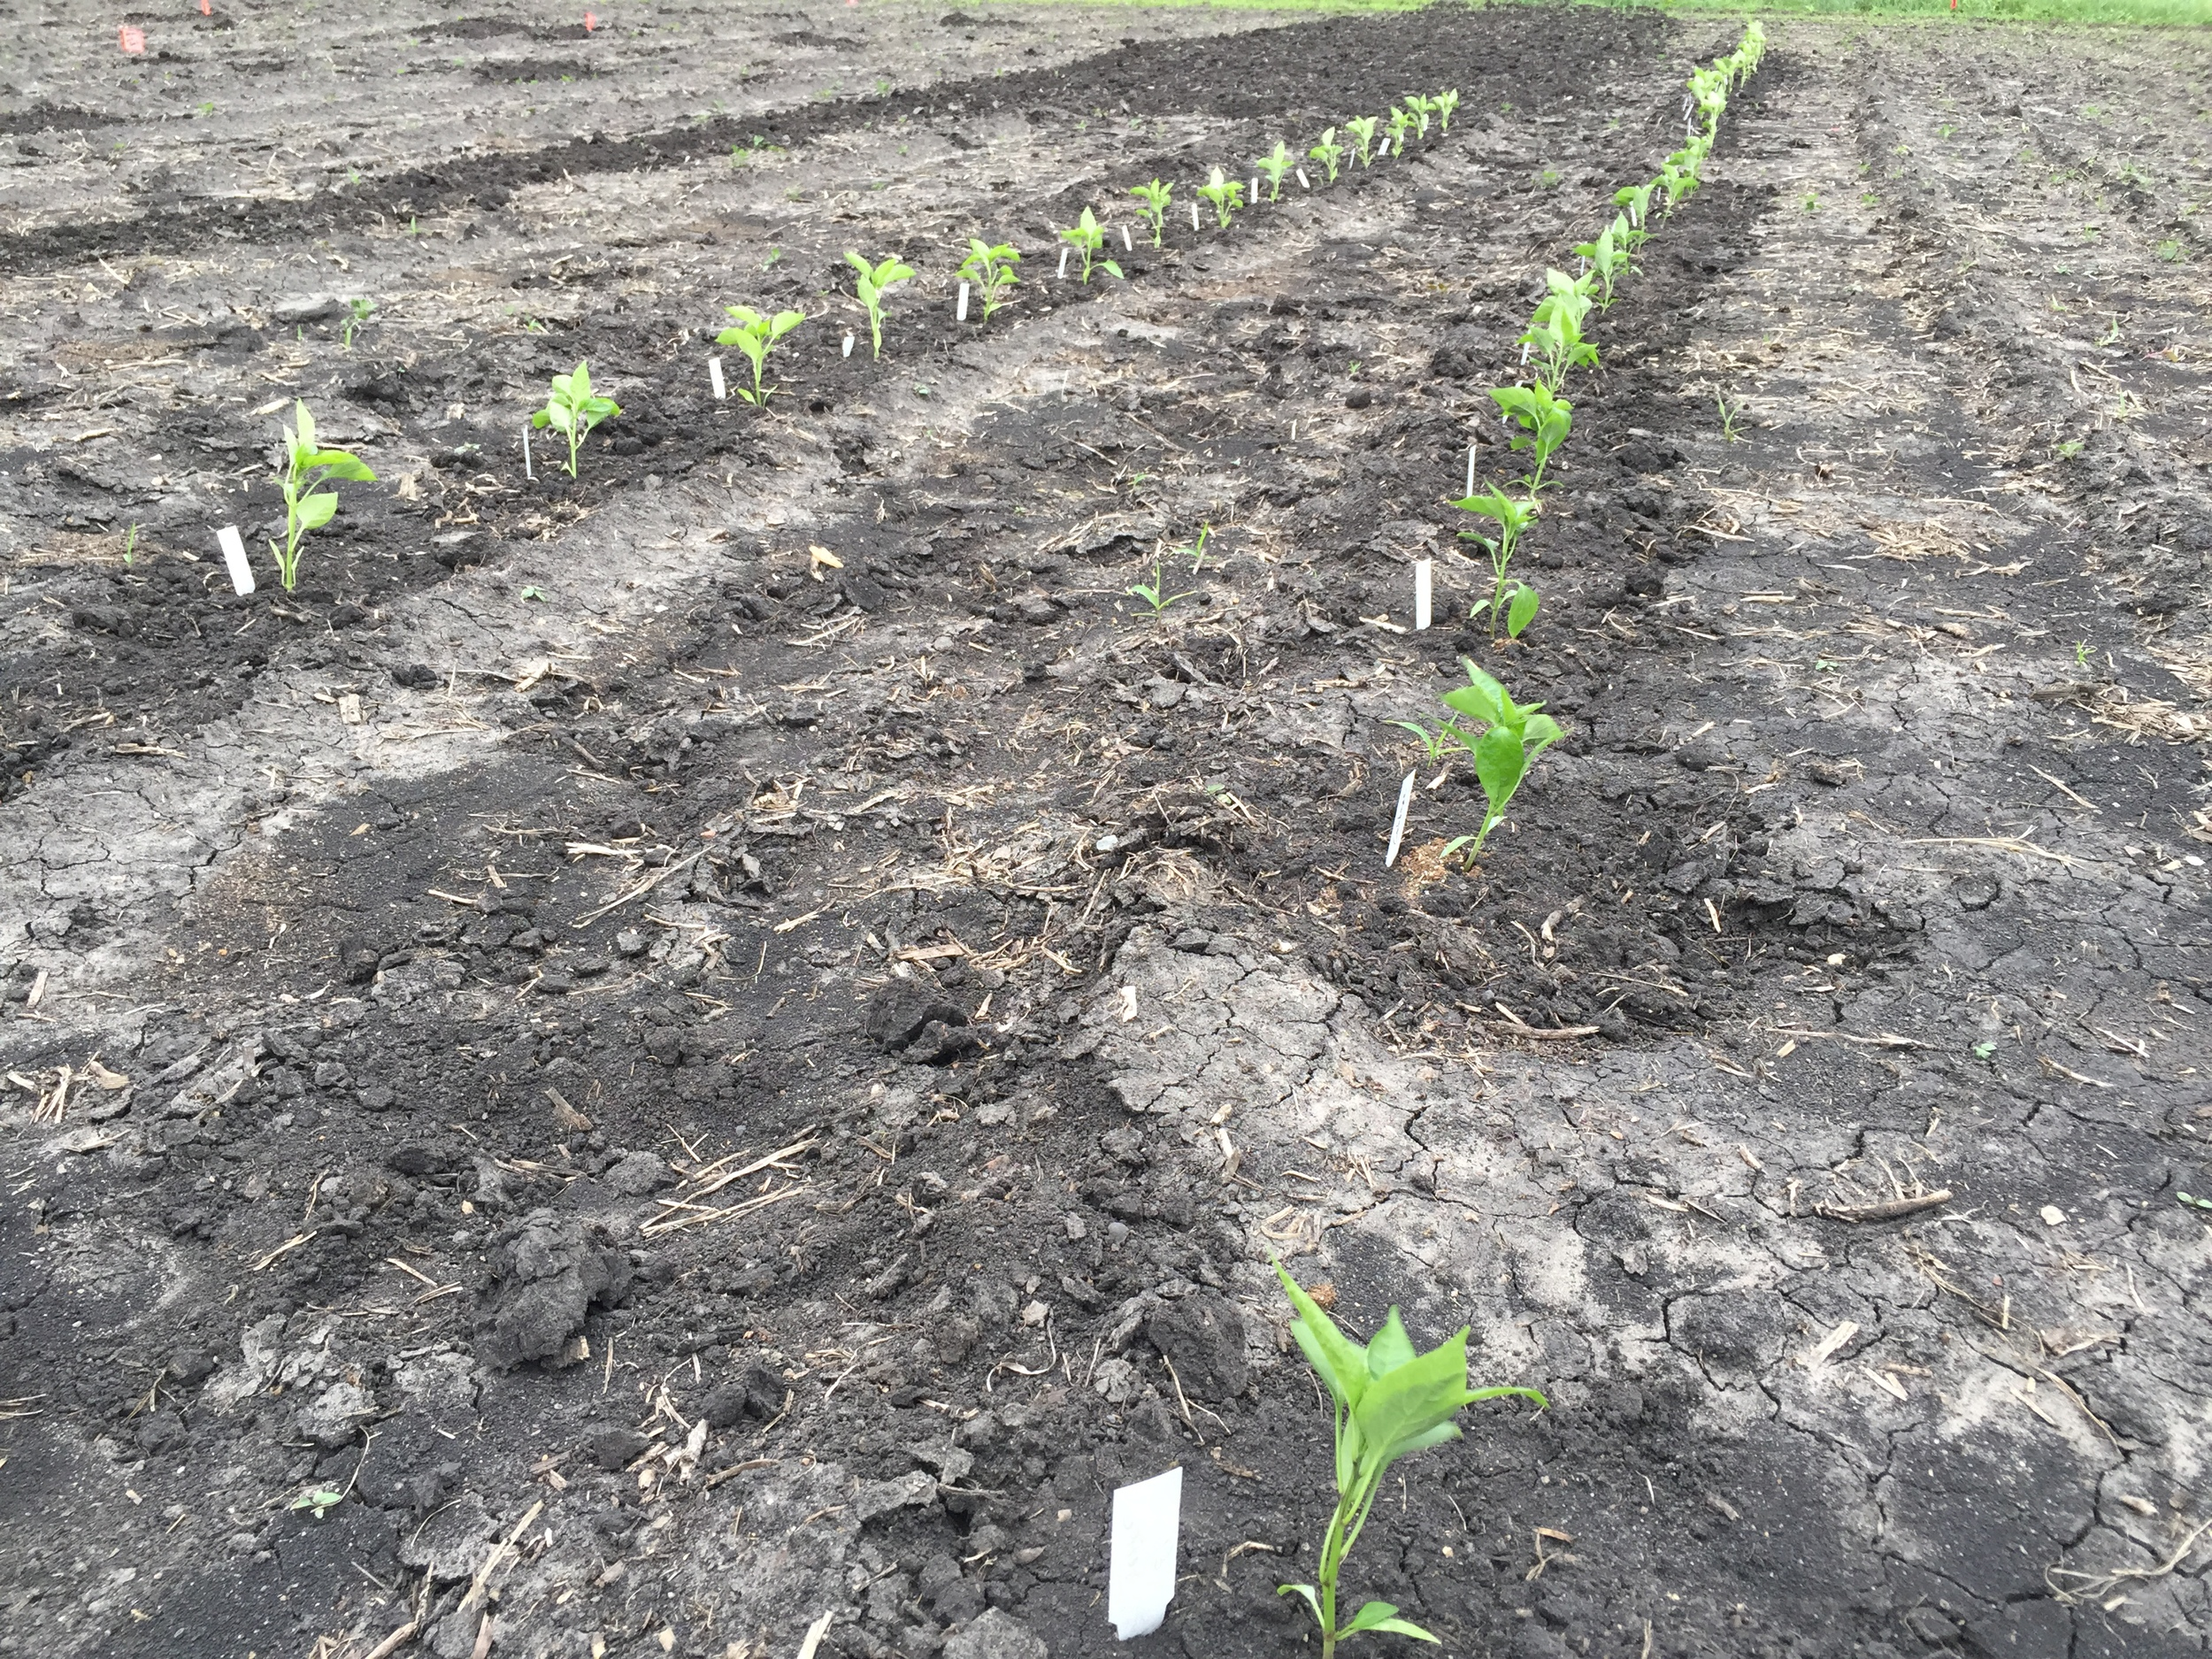 Peppers are transplanted!